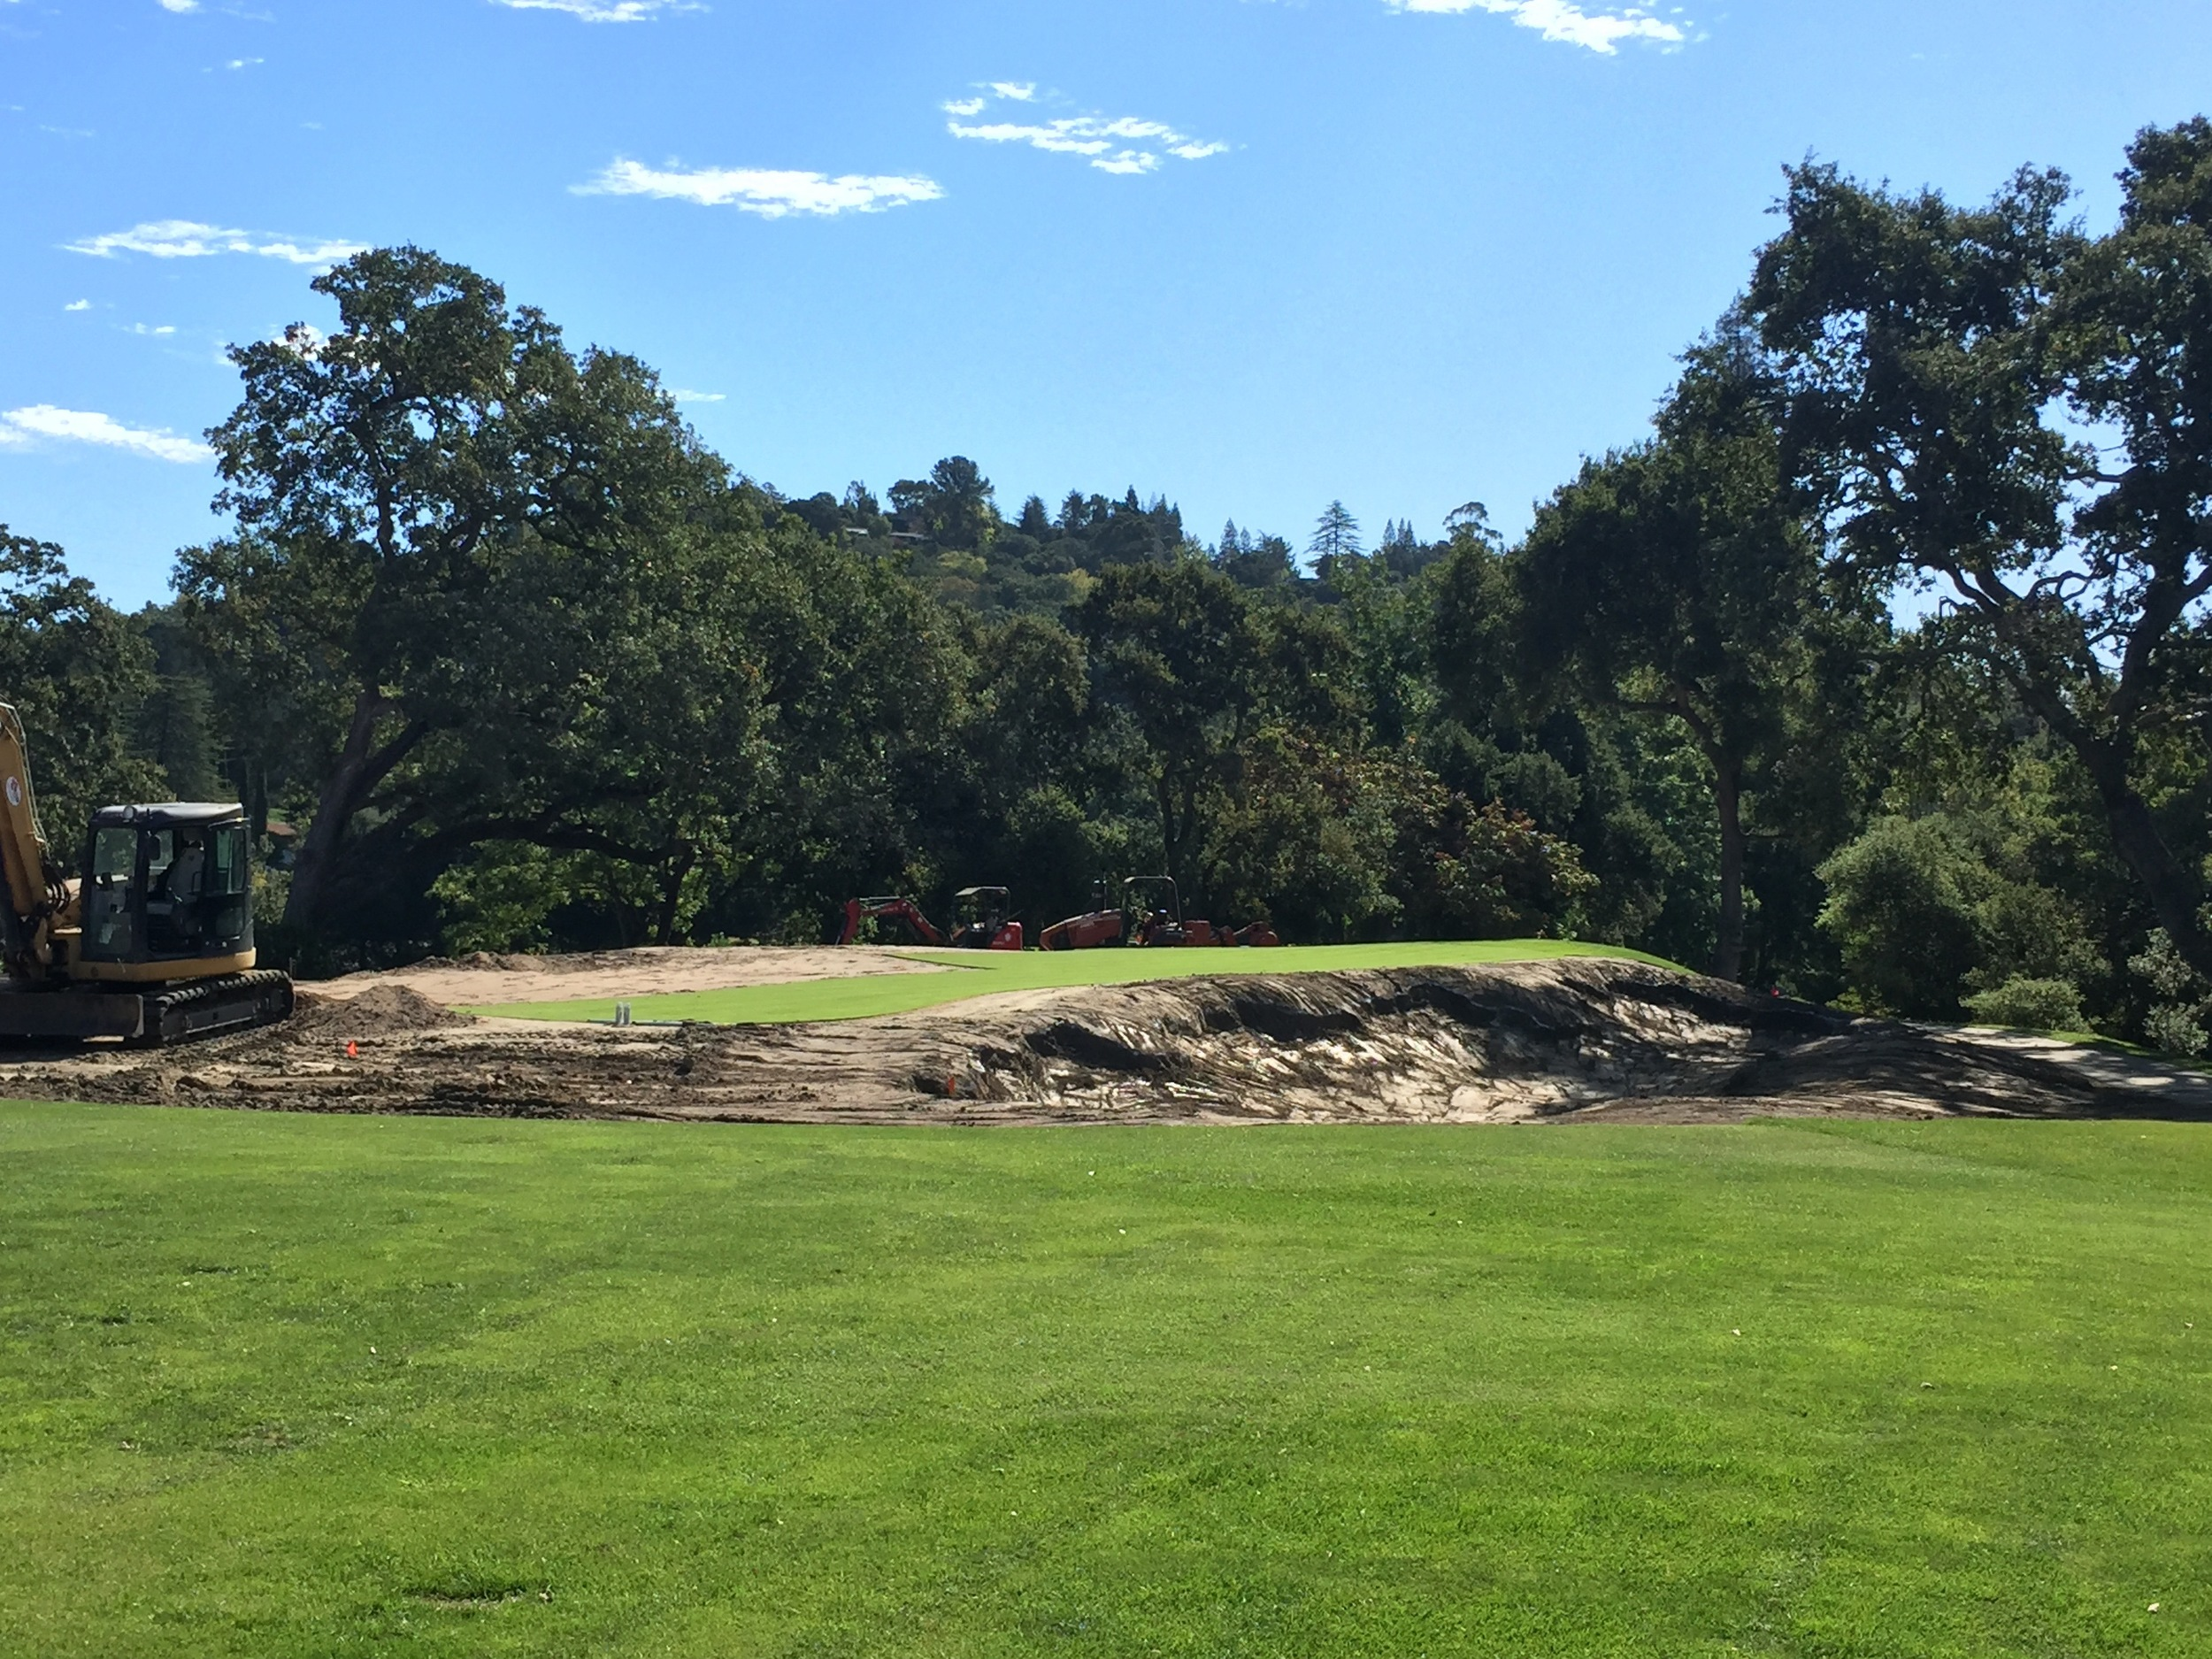 hochstein-design-orinda-cc-hole-14-construction-2.jpg